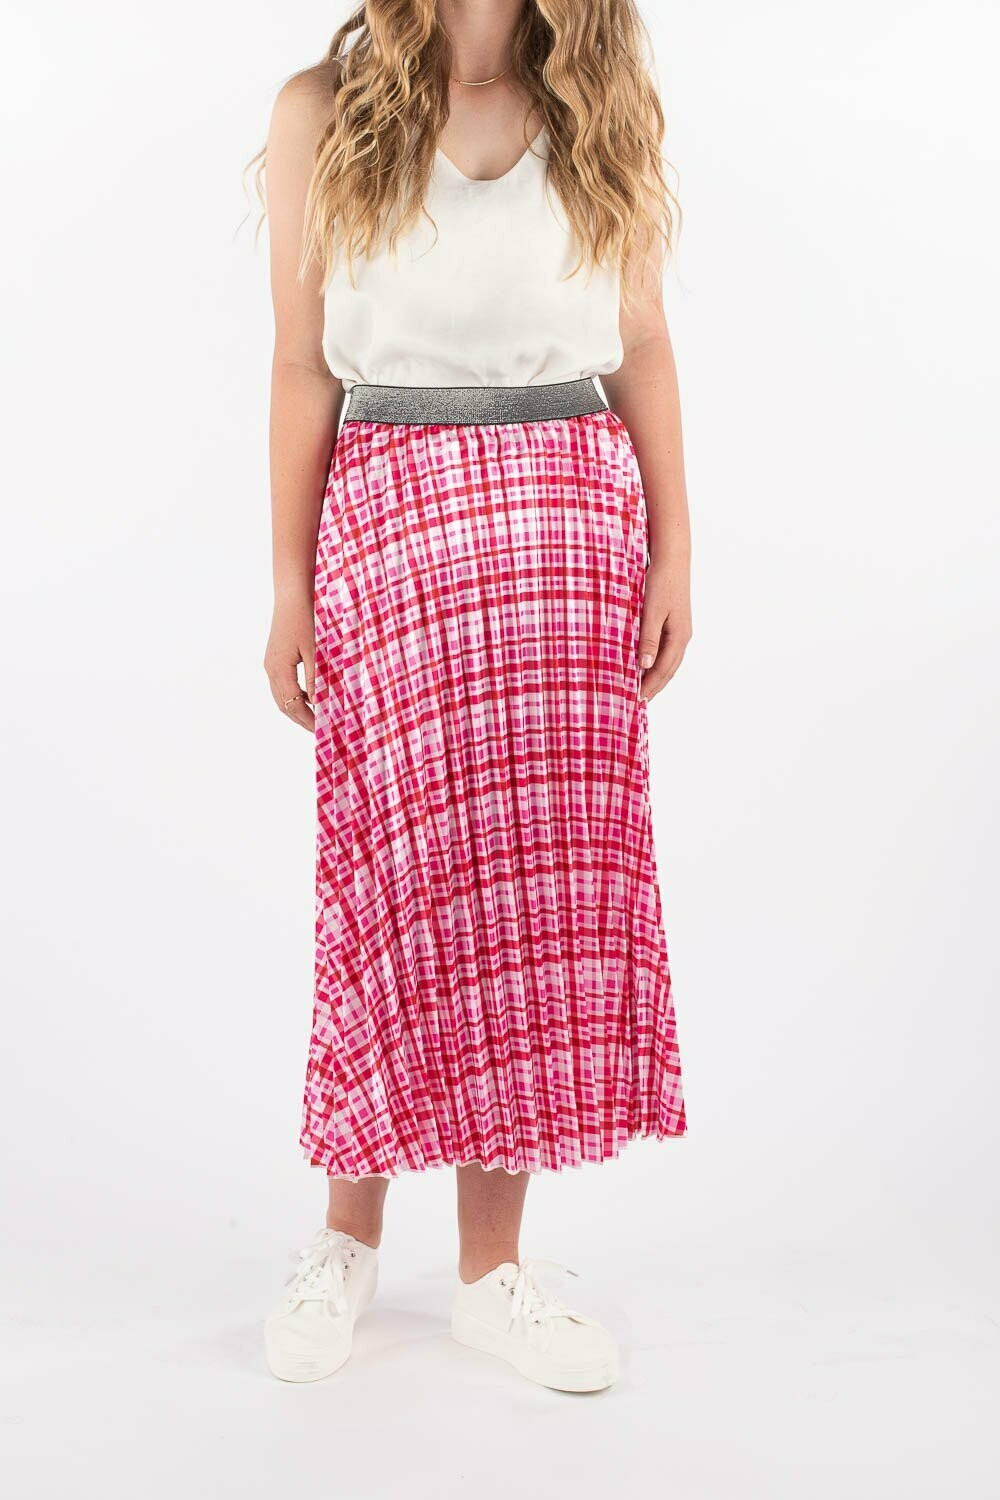 Pleated Skirt - Checked Out - One Size